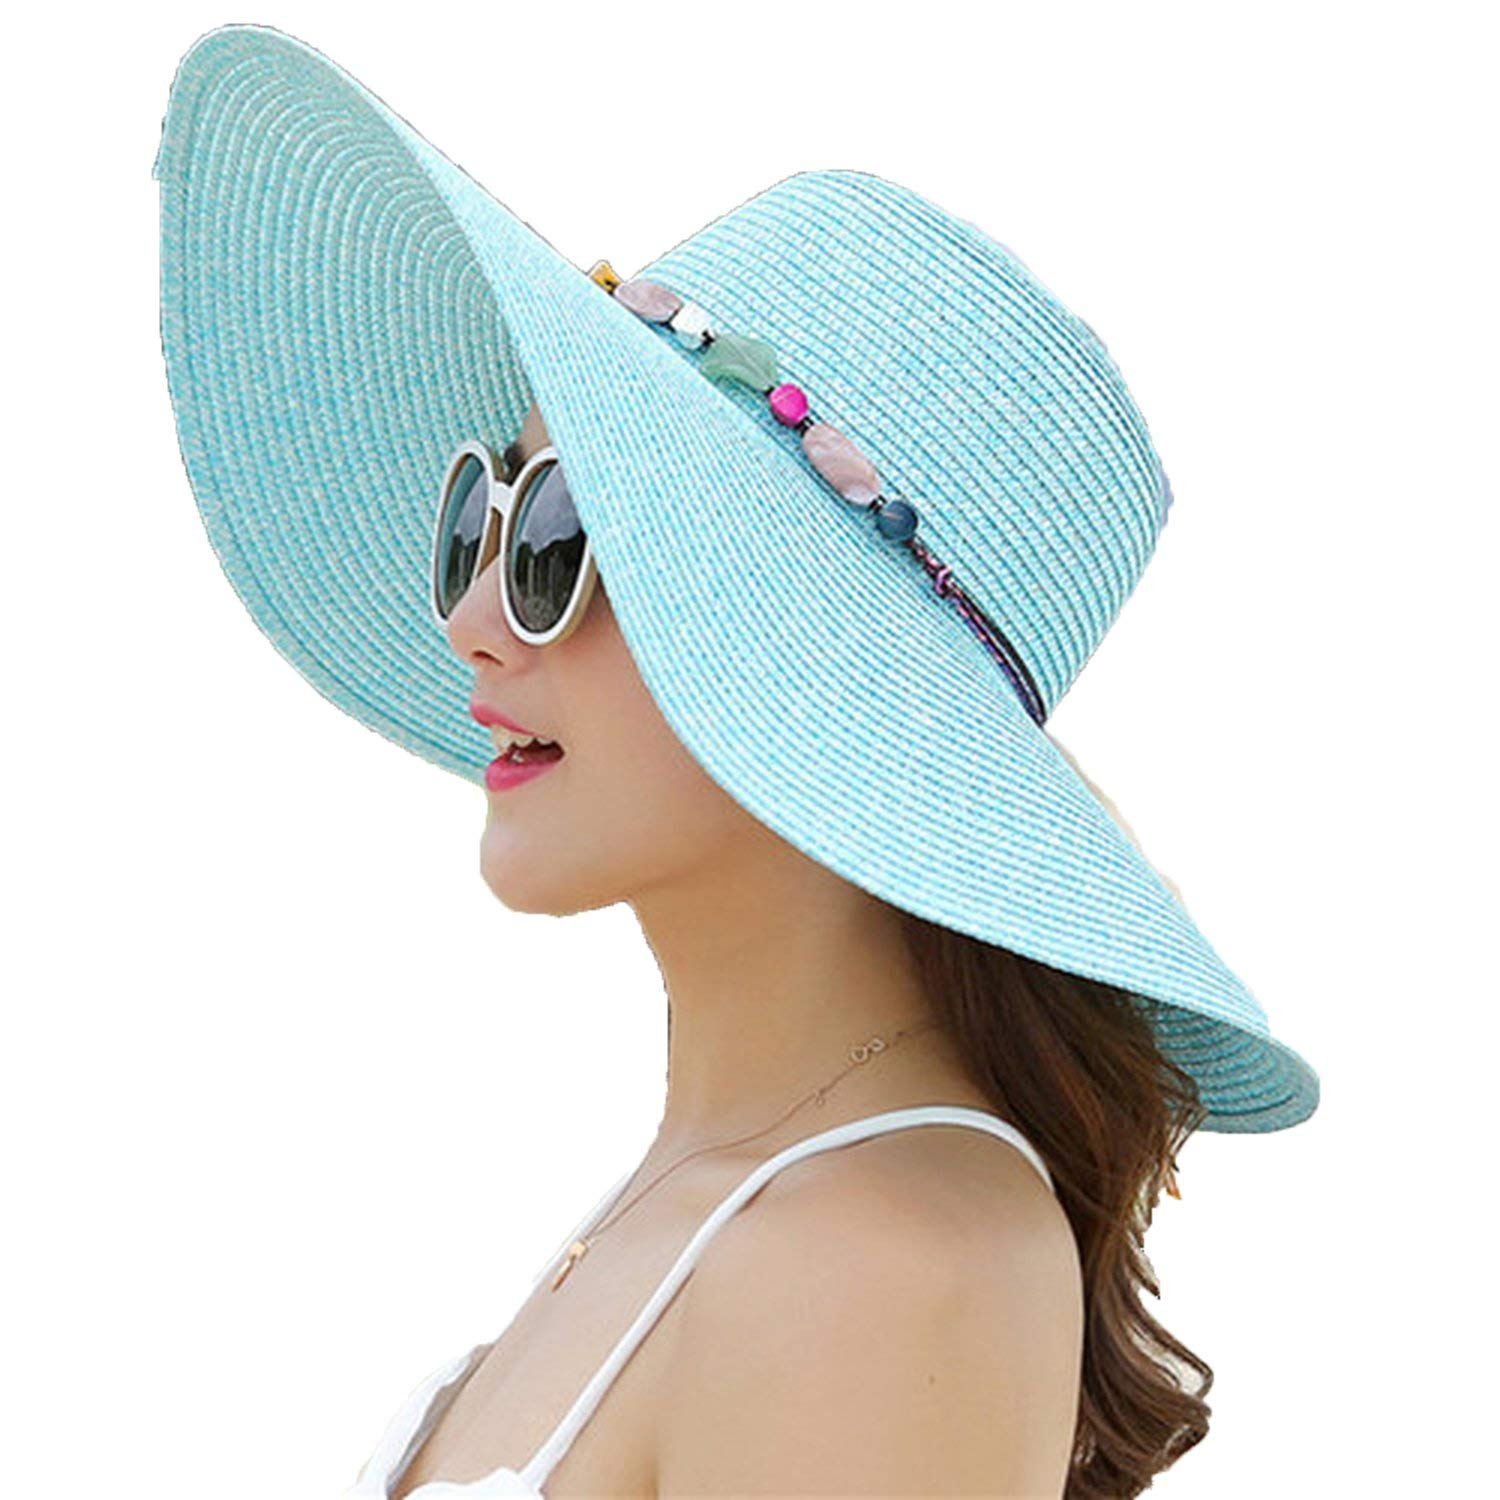 37ce9199b24 Romantic moments Women s Beach Sun Hats 2018 hot Big Brim Foldable Colorful  Stone Hand Made Straw Casual Shade Sun Hat